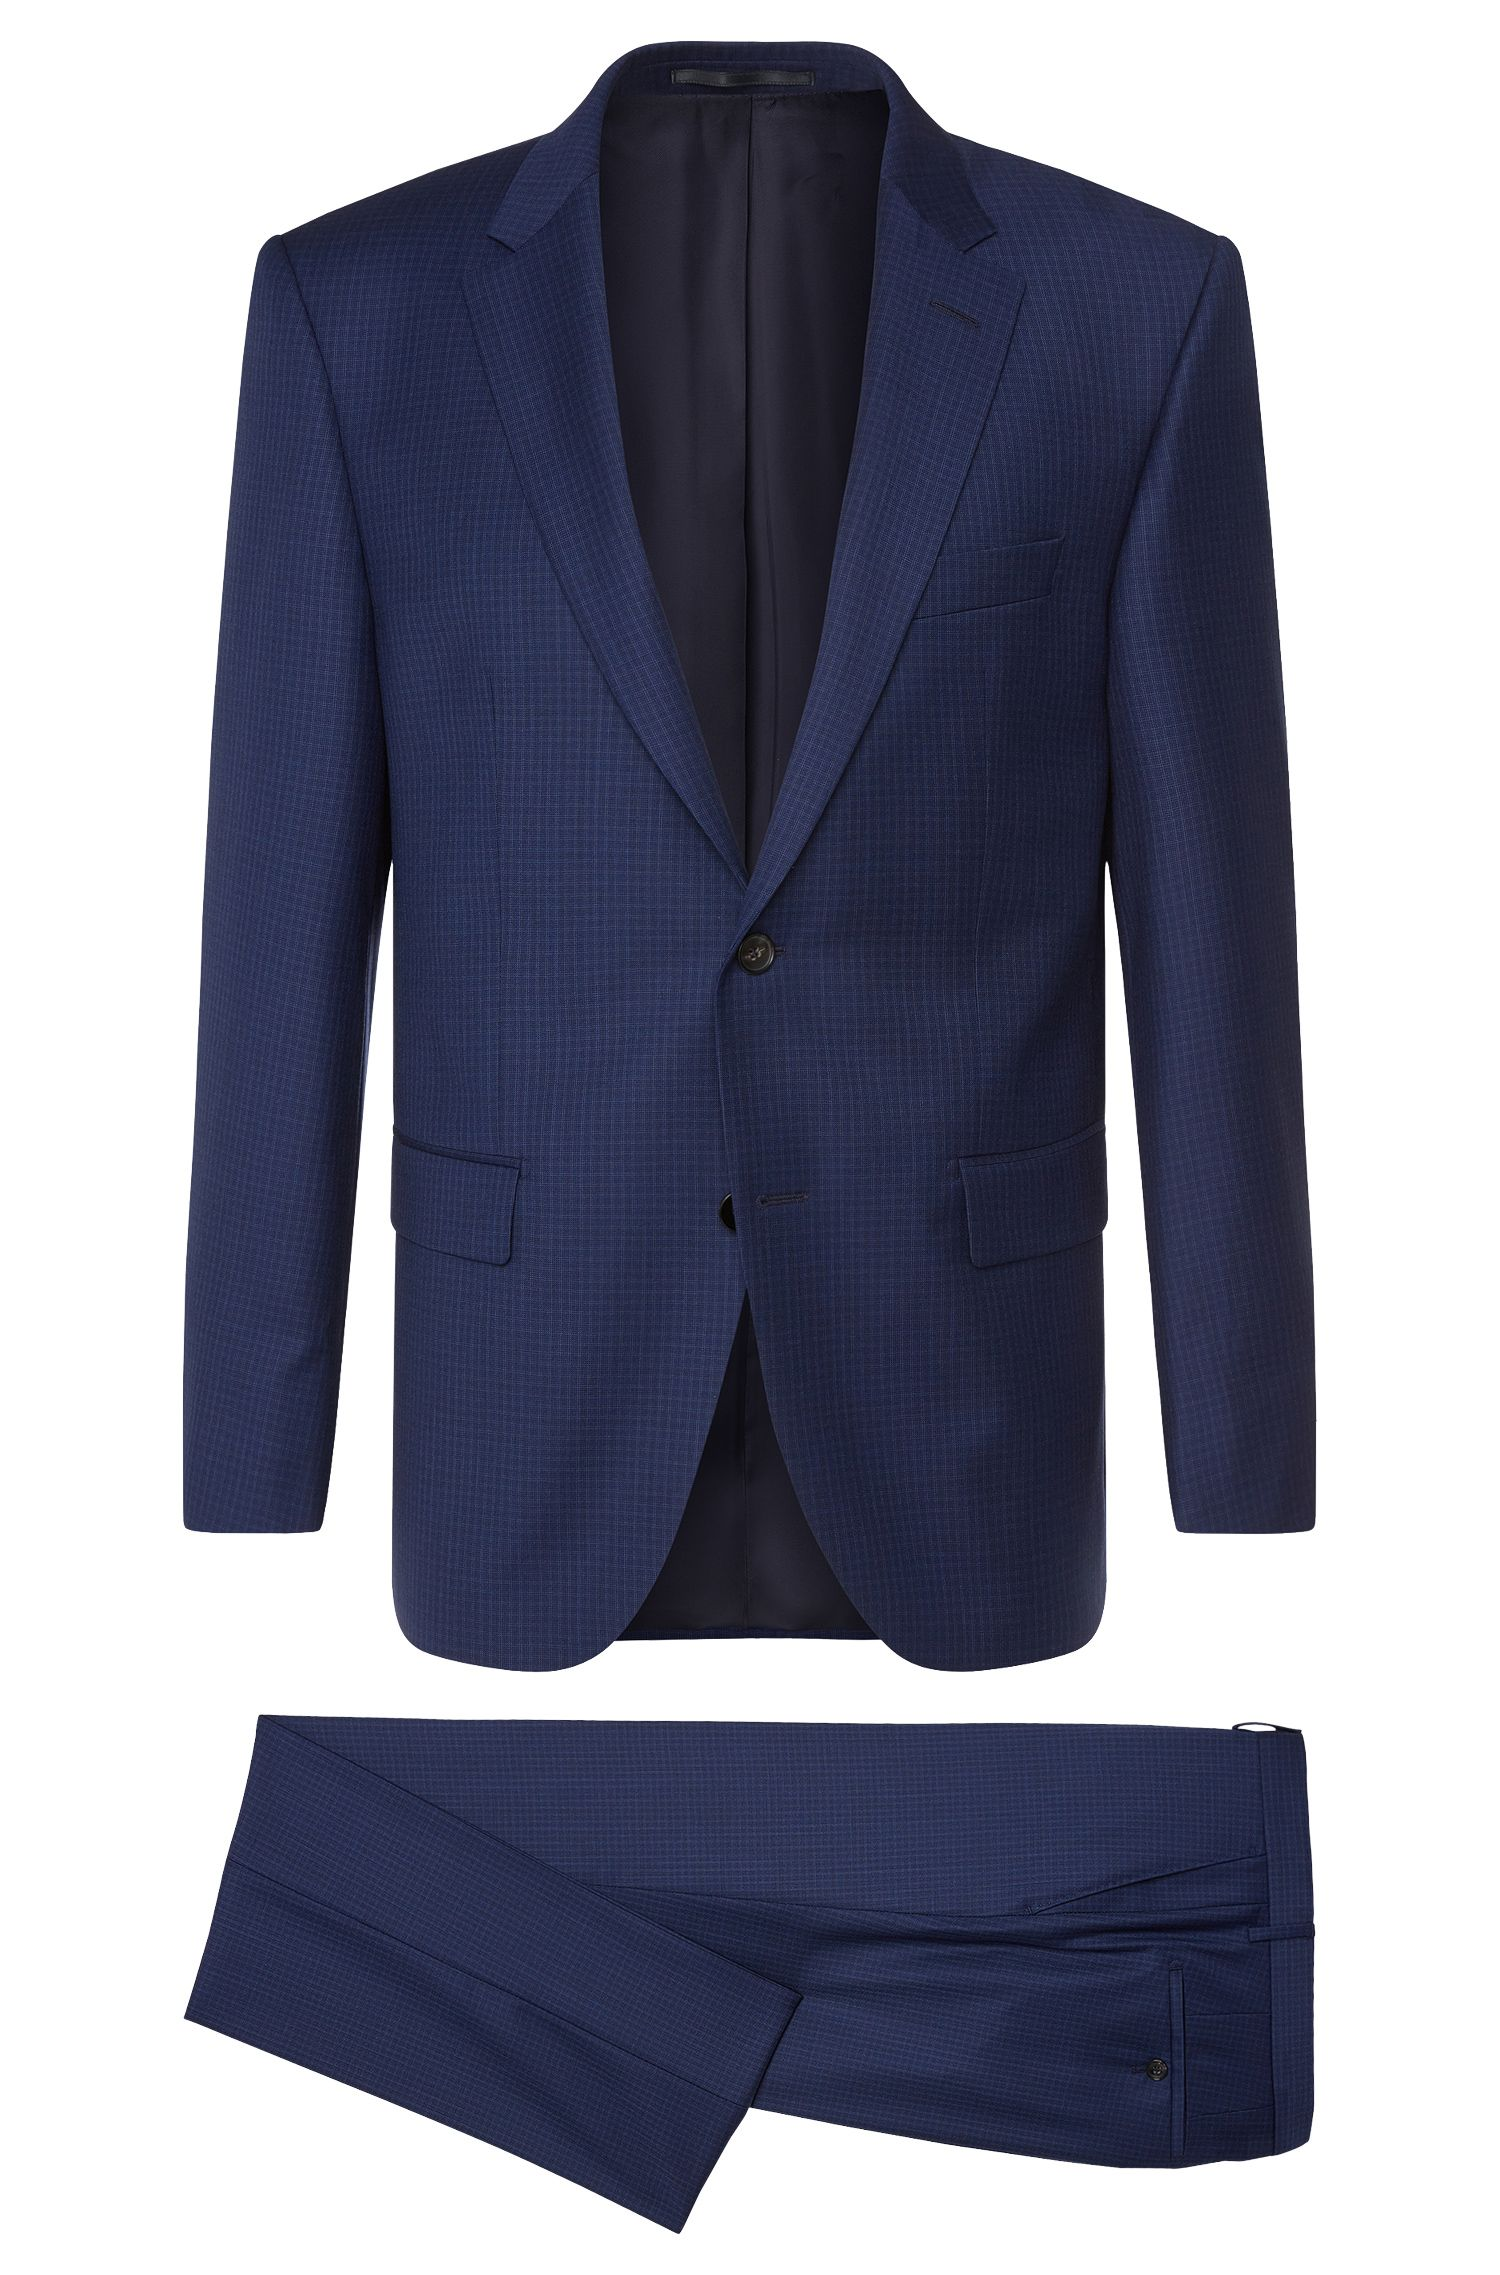 Costume Regular Fit Tailored à carreaux fins, en laine vierge : « T-Howard4/Court5 »